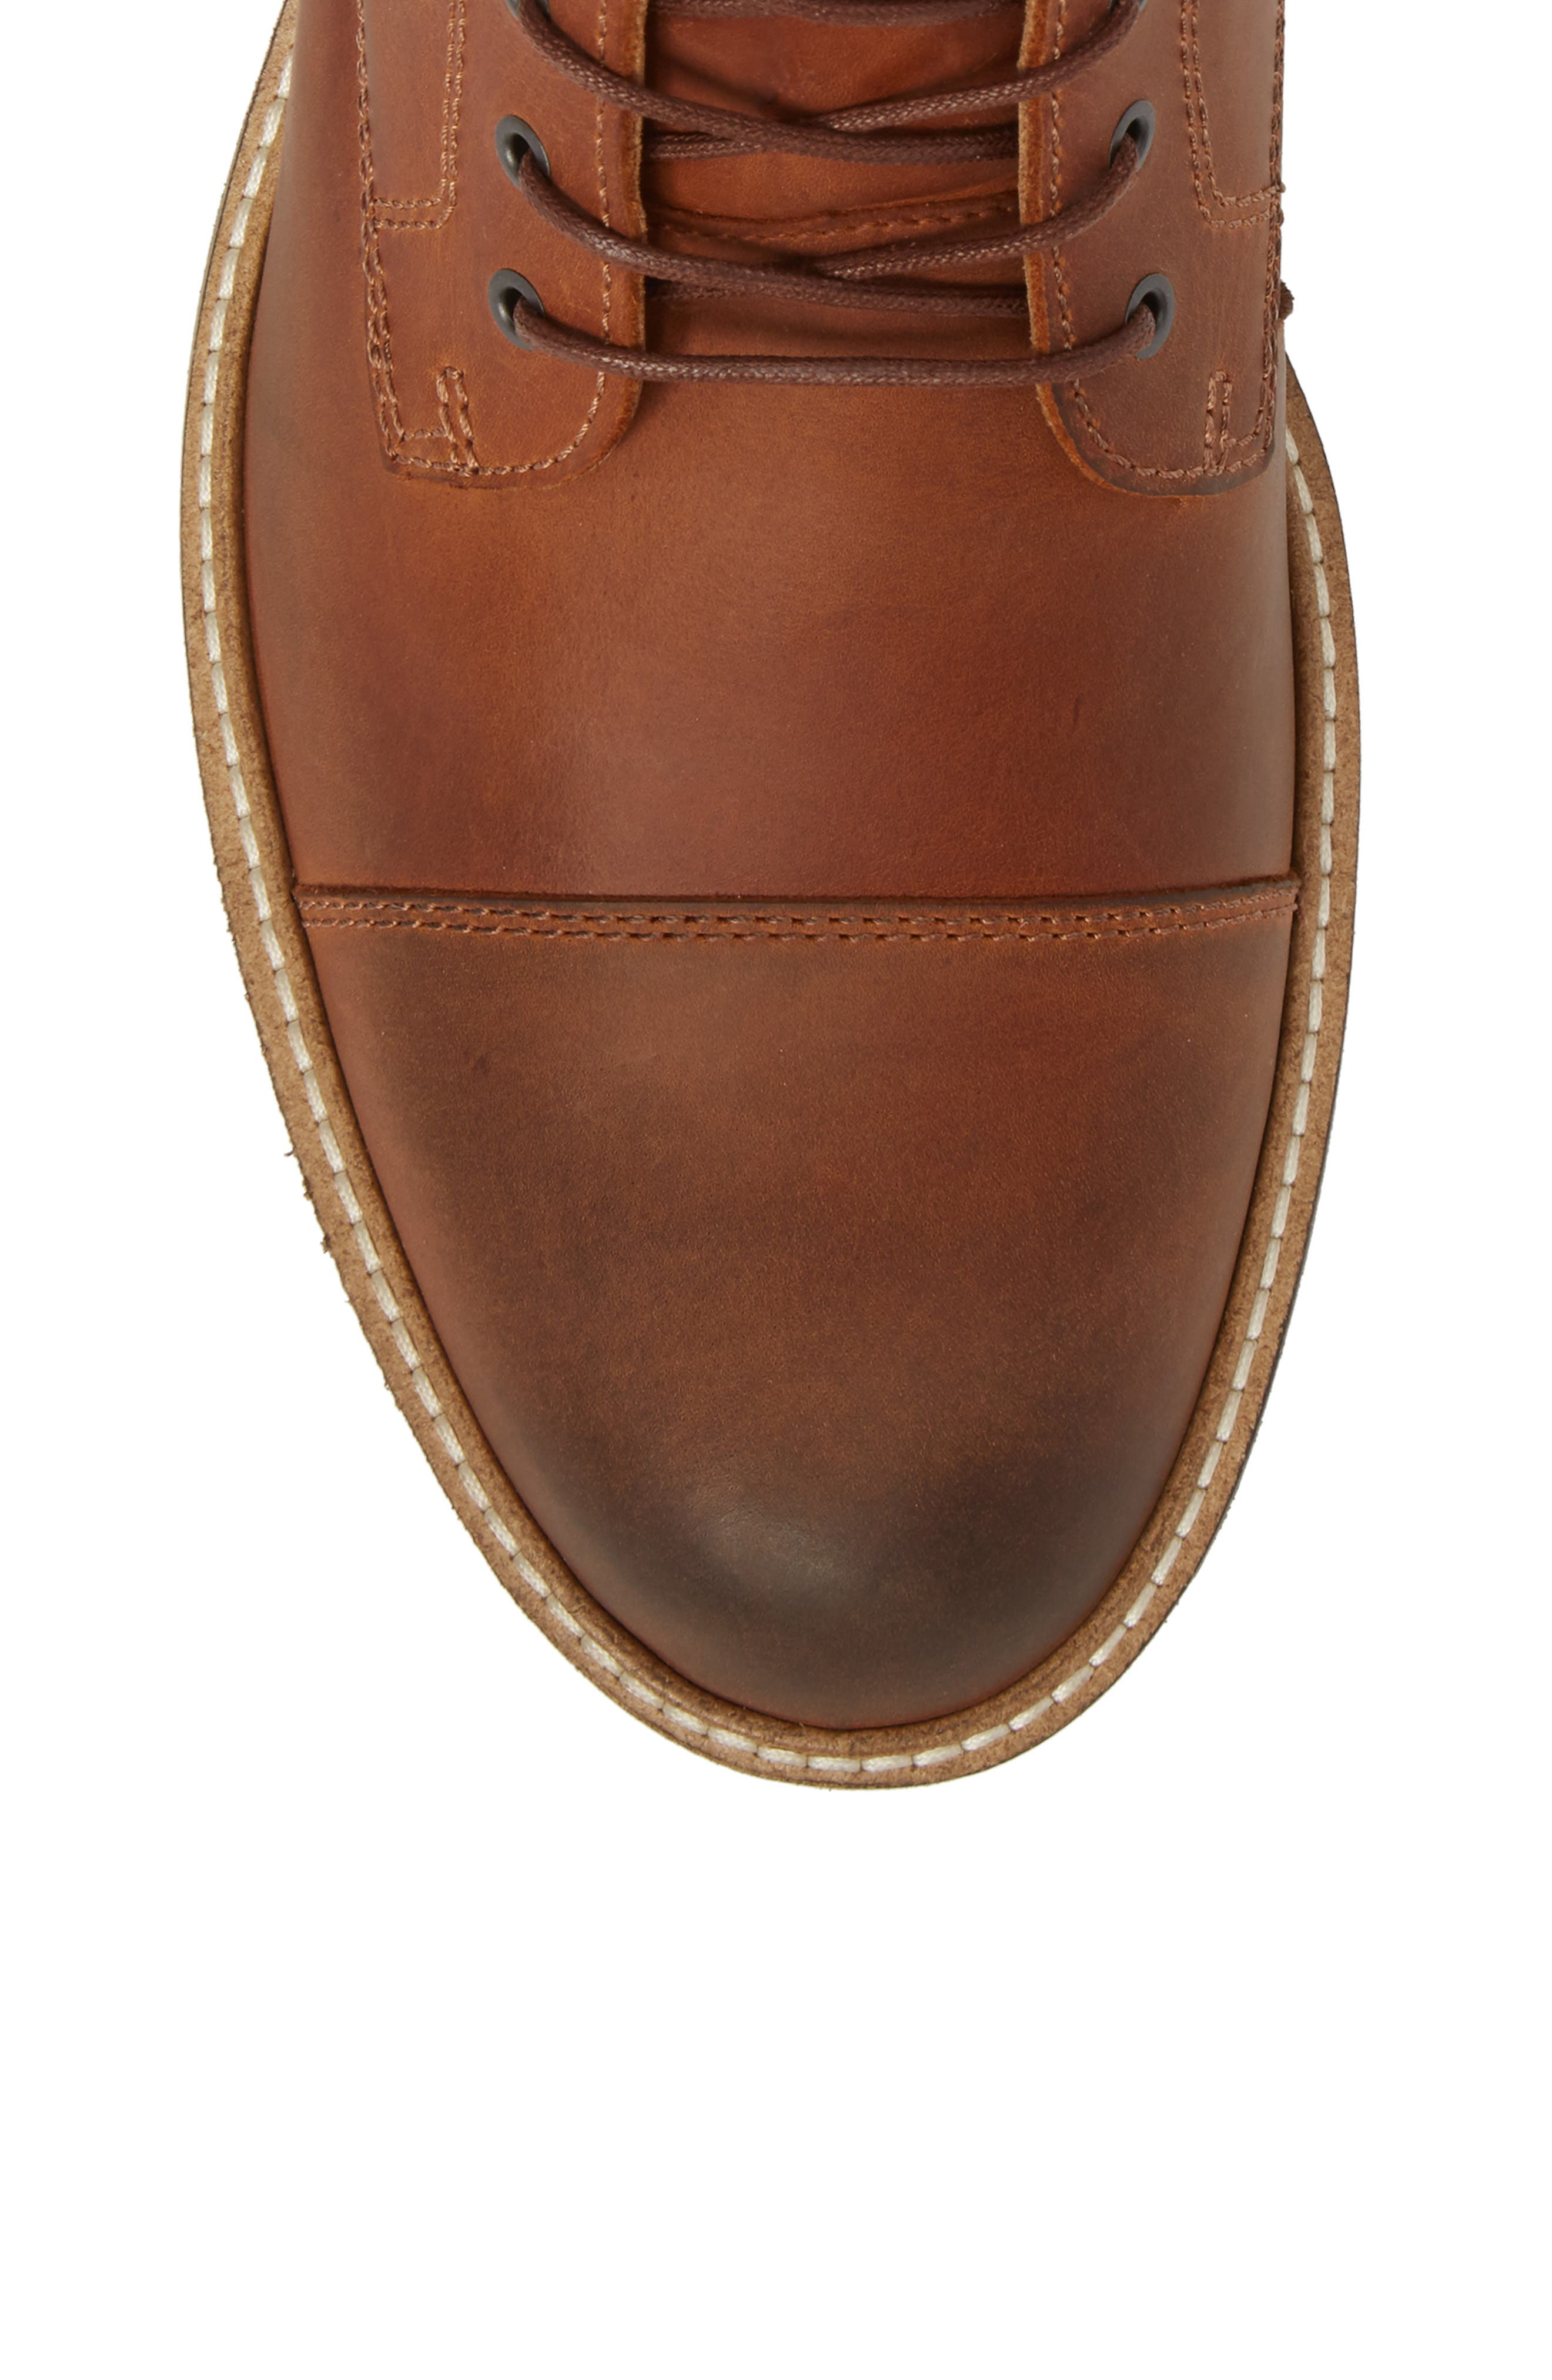 Kenton Vintage Cap Toe Boot,                             Alternate thumbnail 5, color,                             Cognac Leather